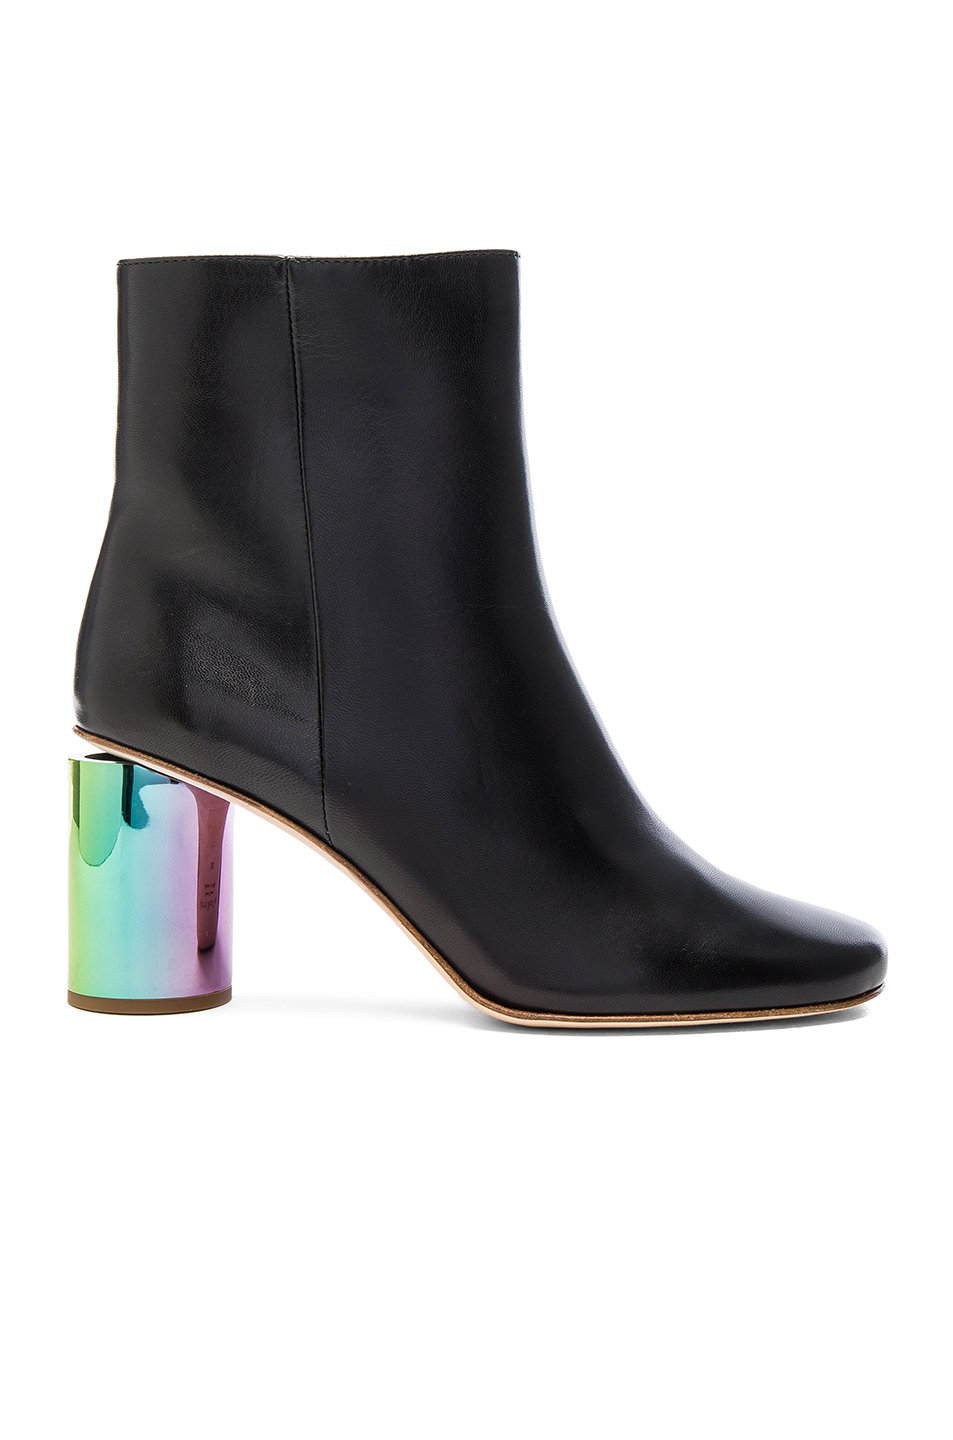 Acne Studios Leather Althea Booties in Black